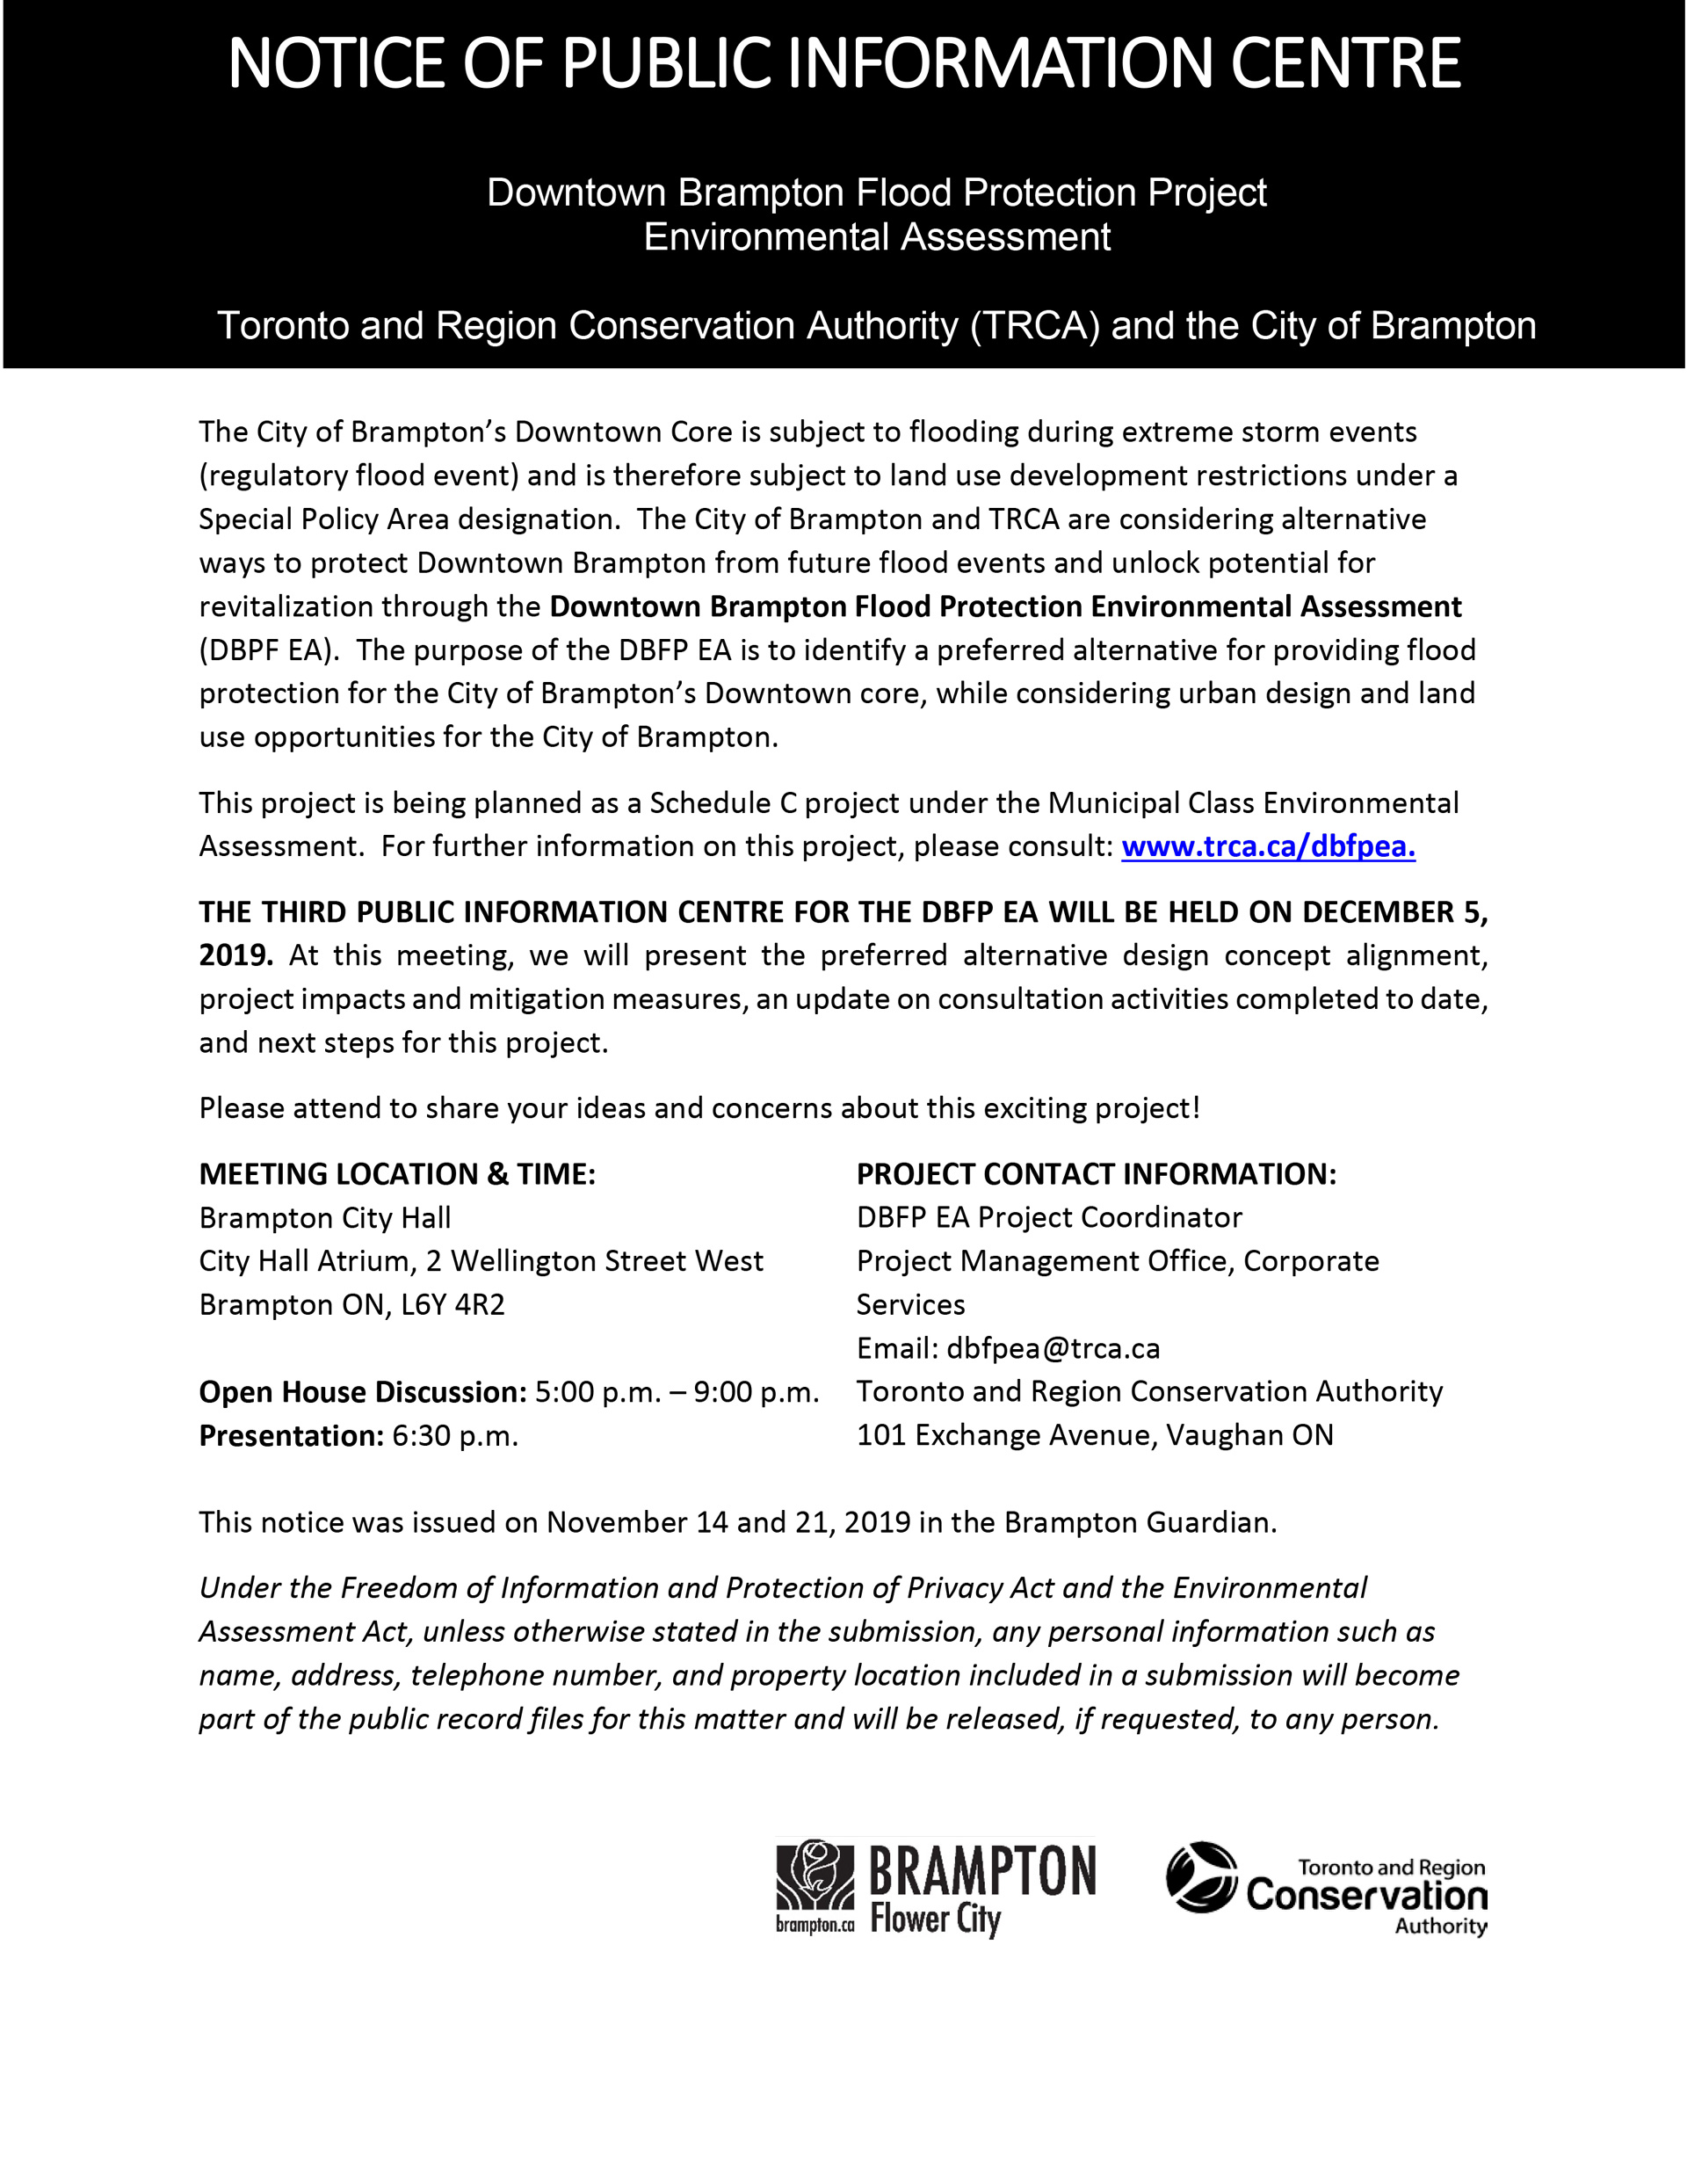 Page 1 notice - Public Information Centre: Downtown Brampton Flood Protection Project Environmental Assessment